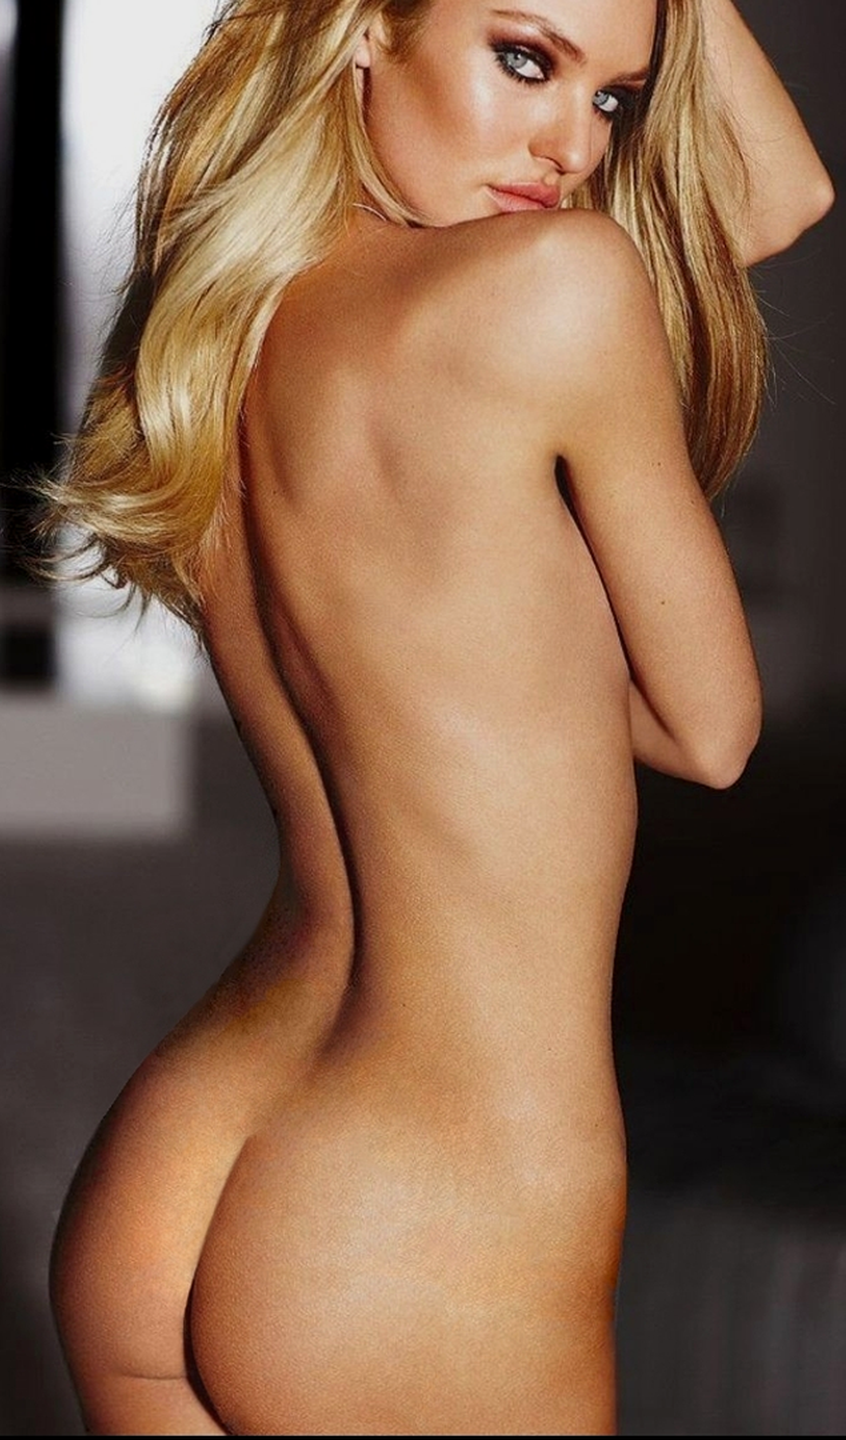 That interfere, Candice swanepoel so sexy nude pussy